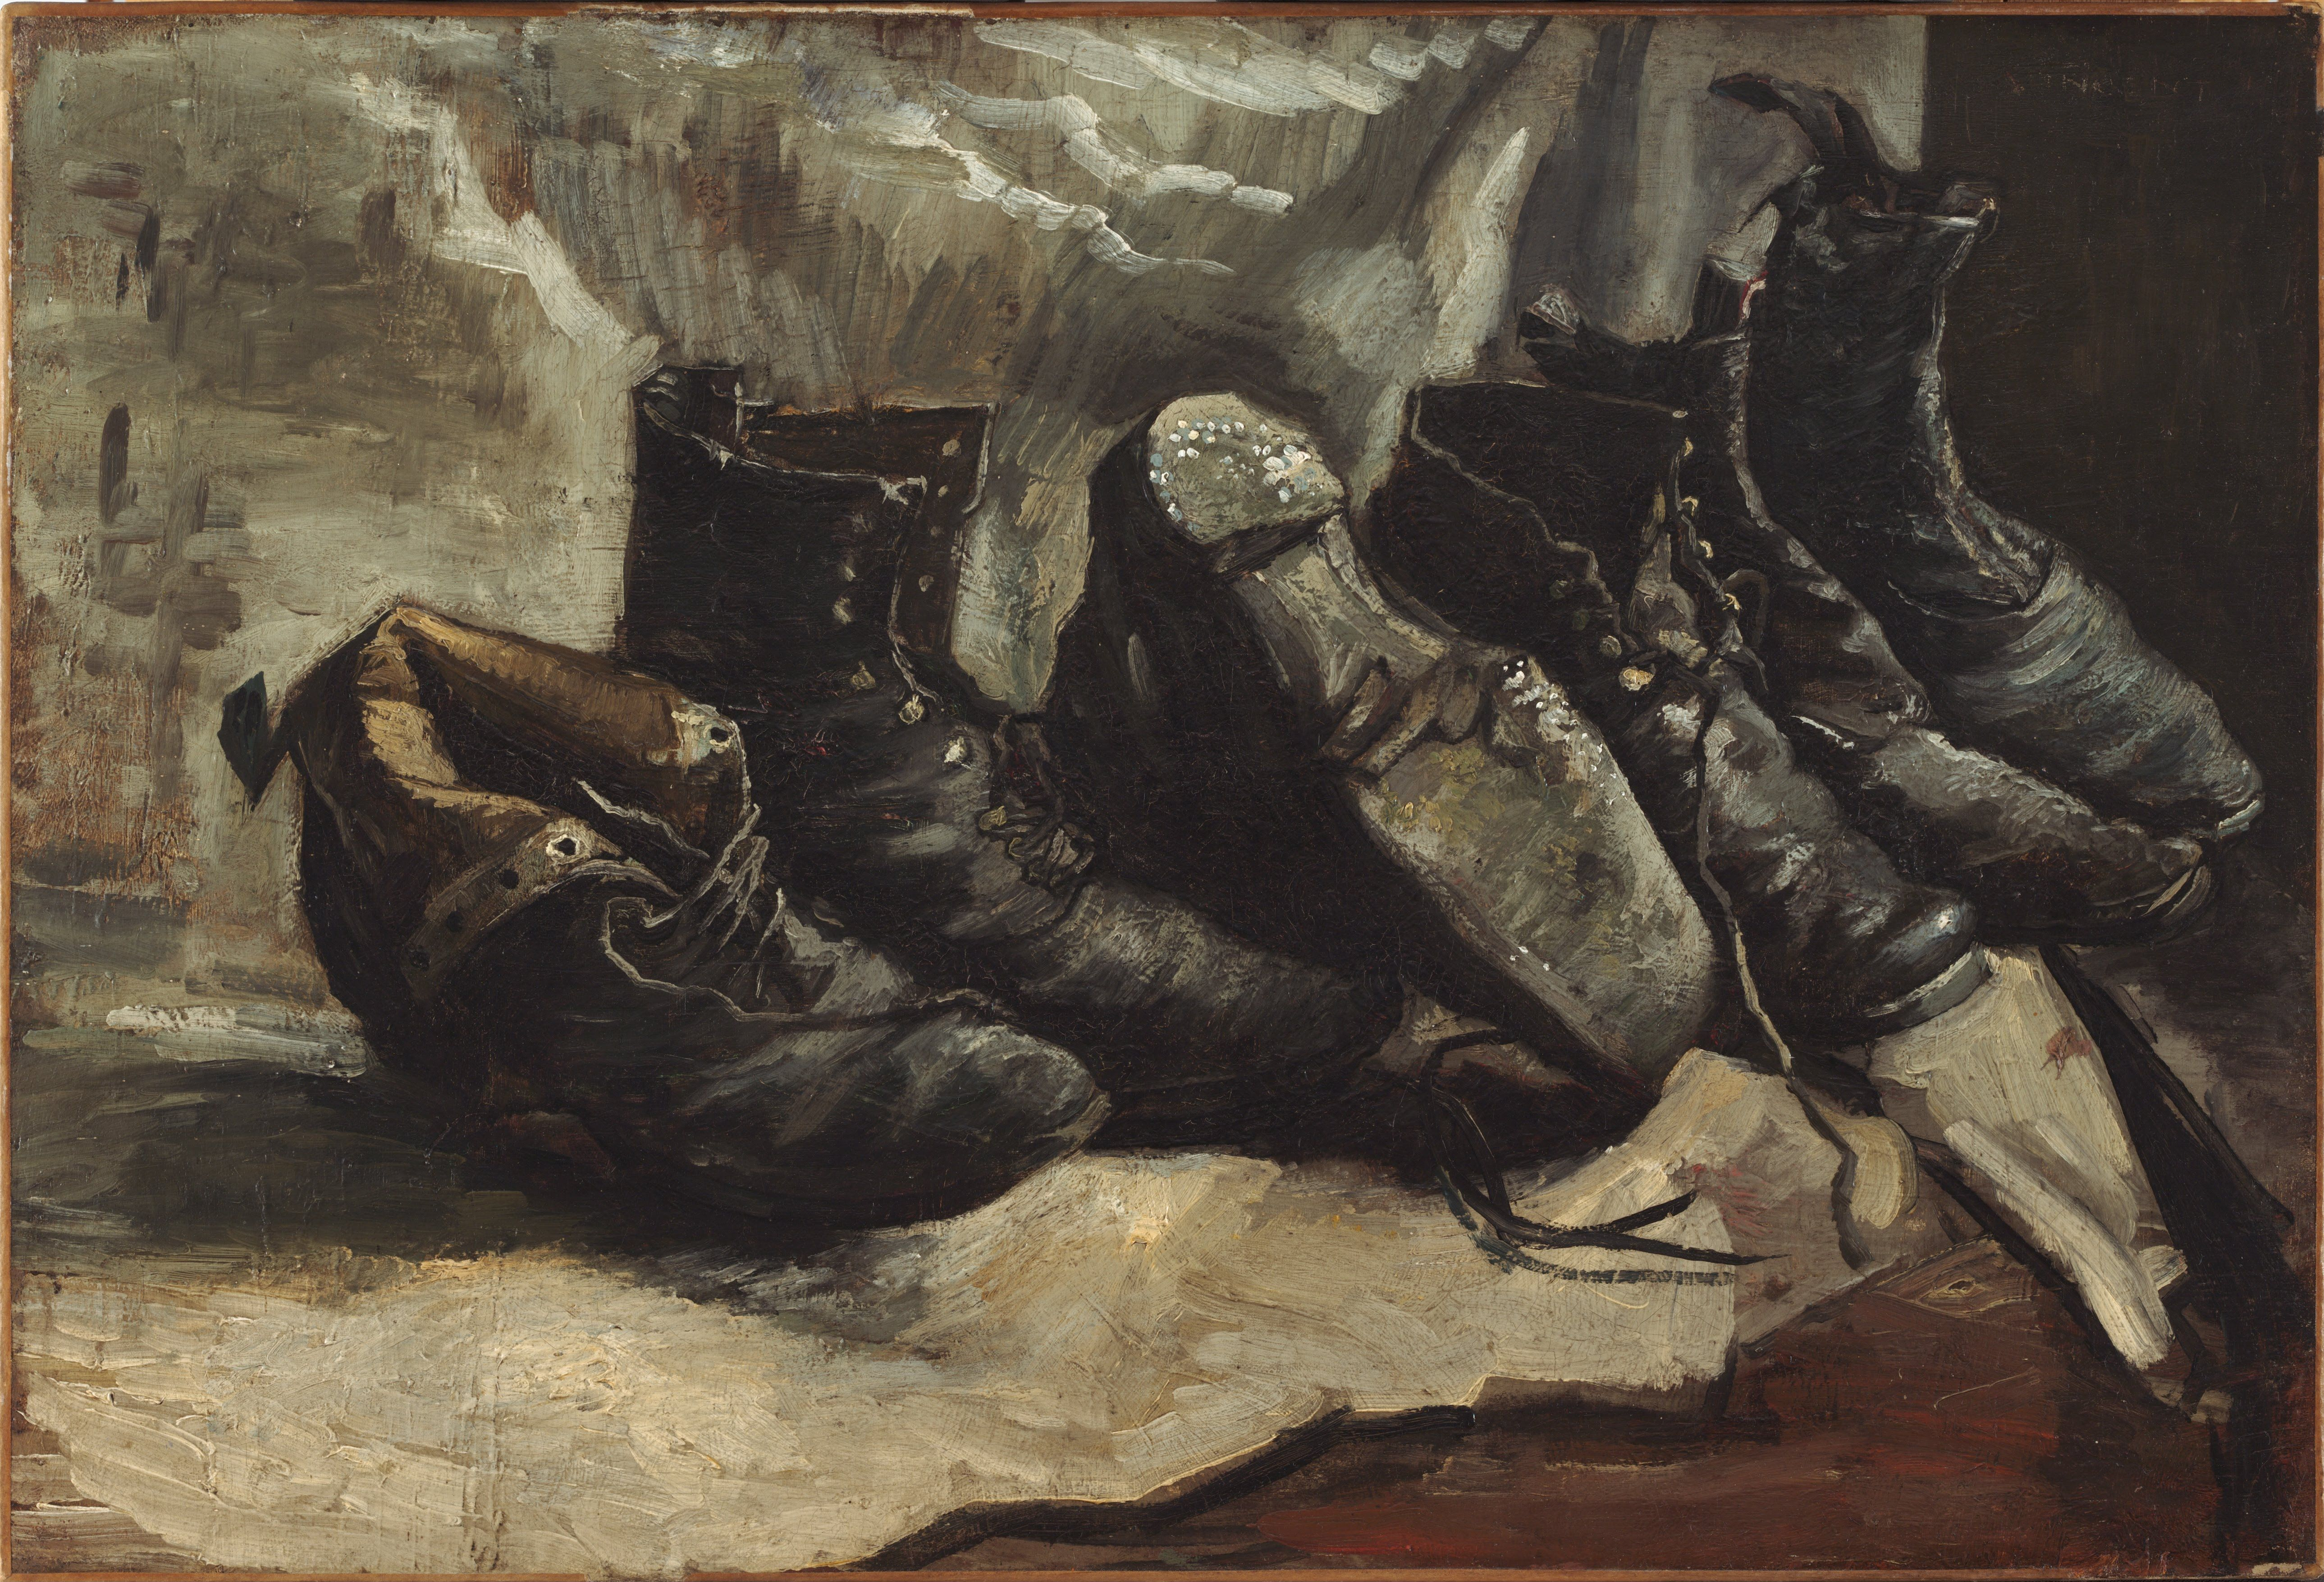 Van Gogh A Pair Of Shoes Analysis